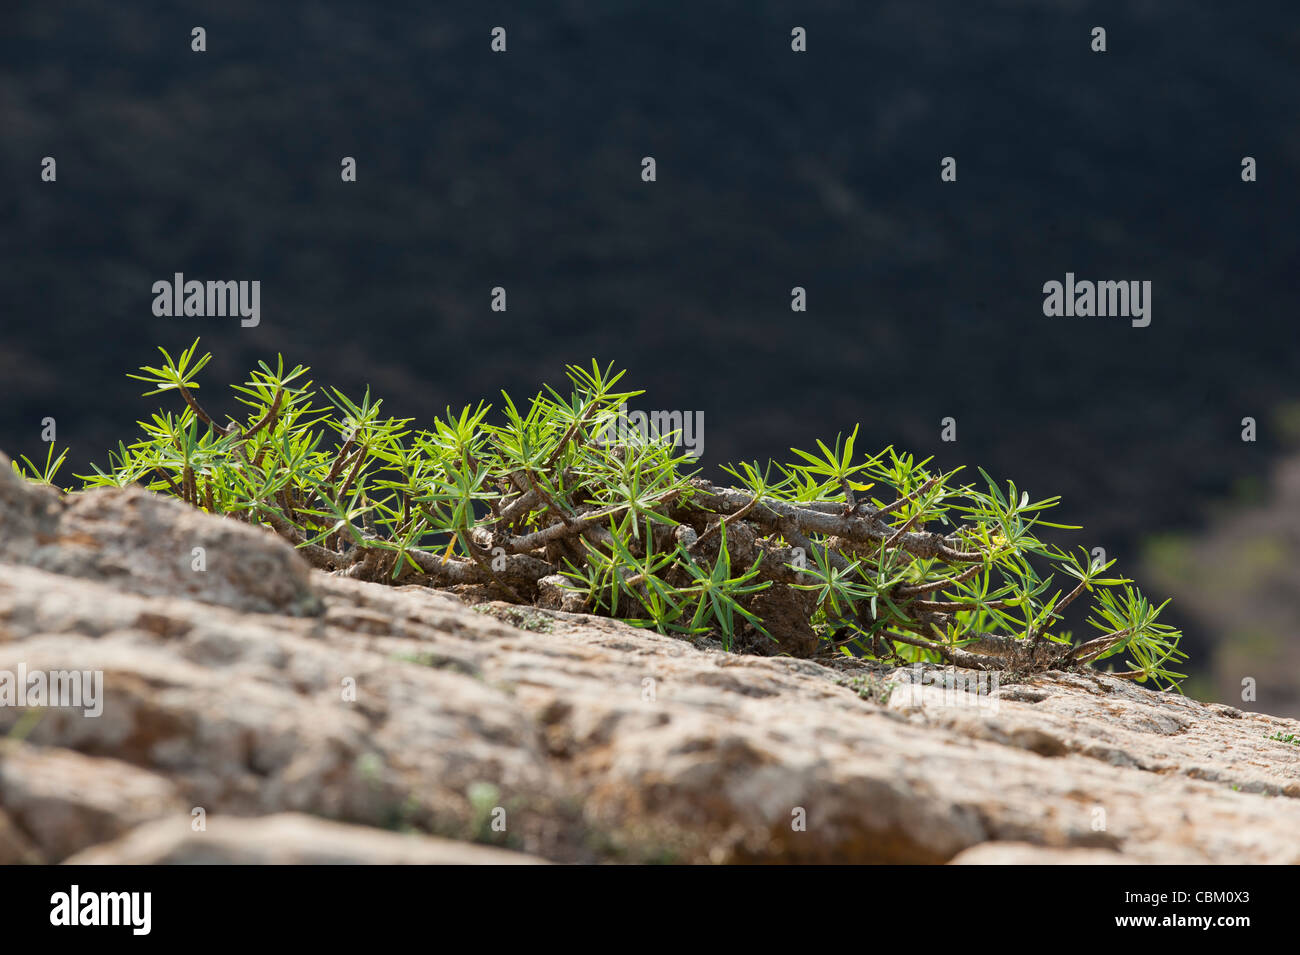 Euphorbia ssp. plant growing on the desolation of the summit of volcano Caldera Blanca in Lanzarote, Canary Islands, - Stock Image